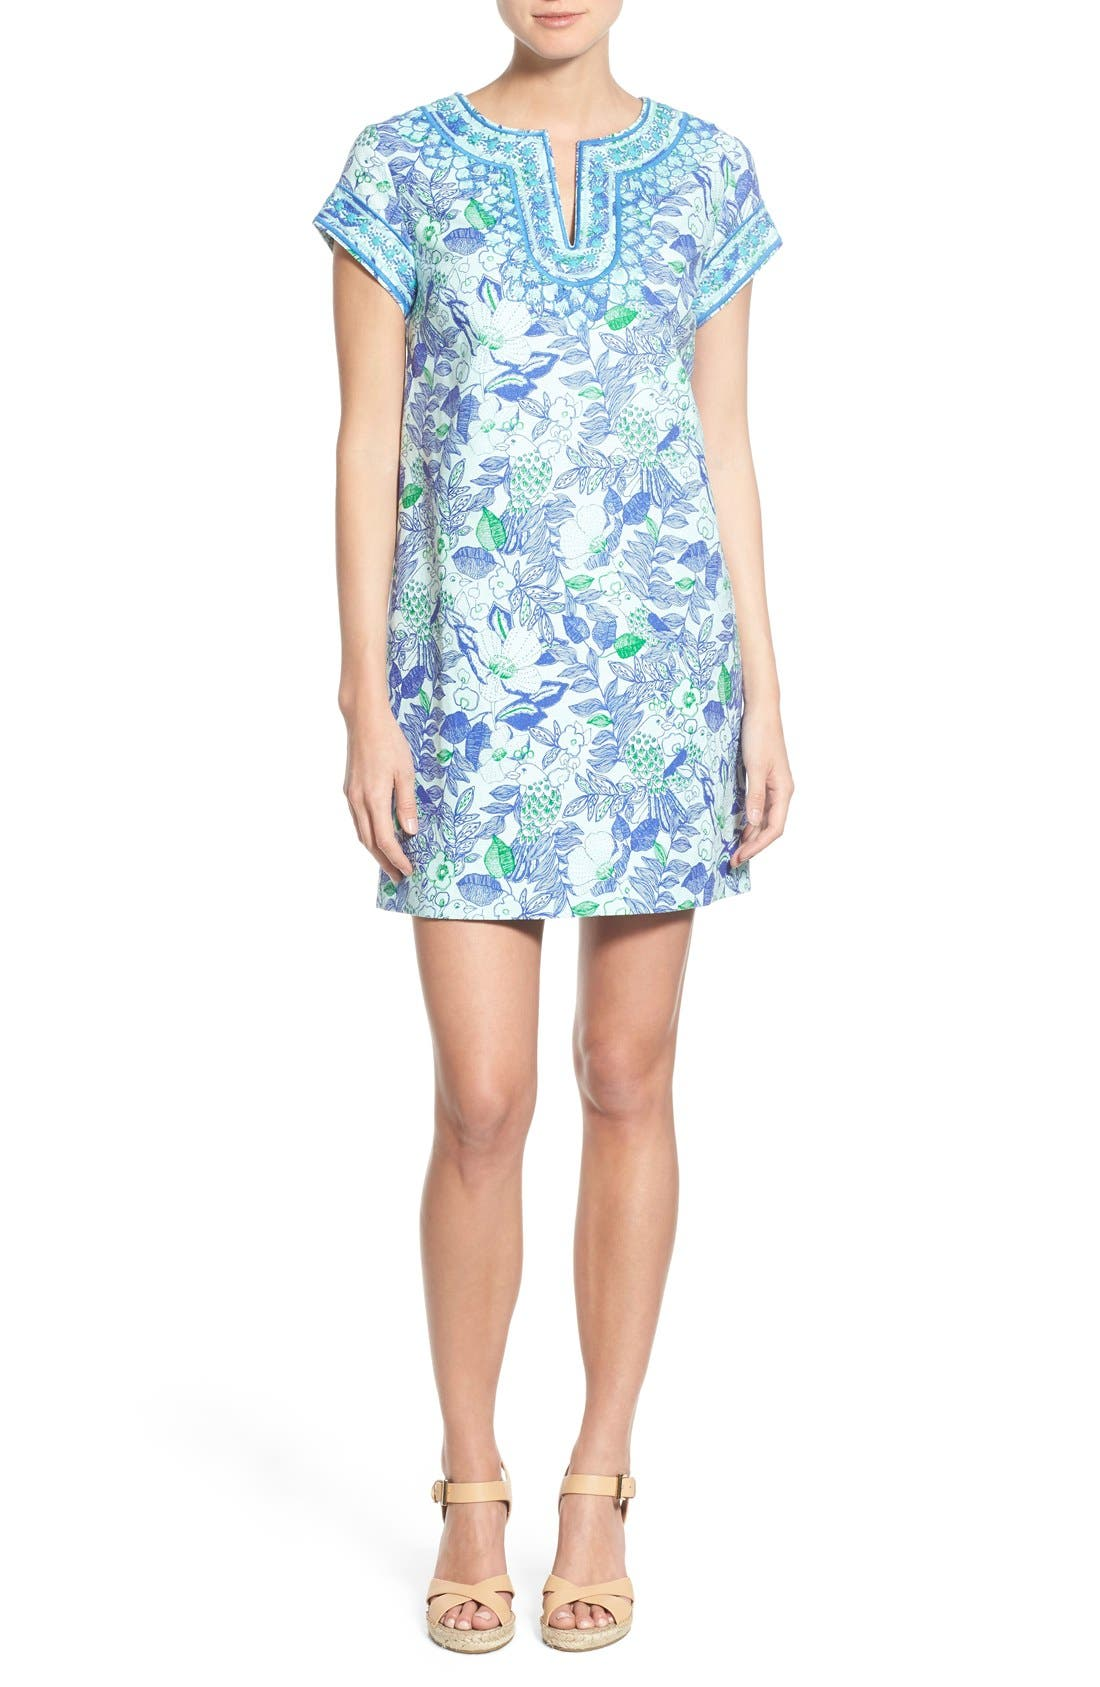 Alternate Image 1 Selected - Vineyard Vines 'Cordia' Floral Print Tunic Dress